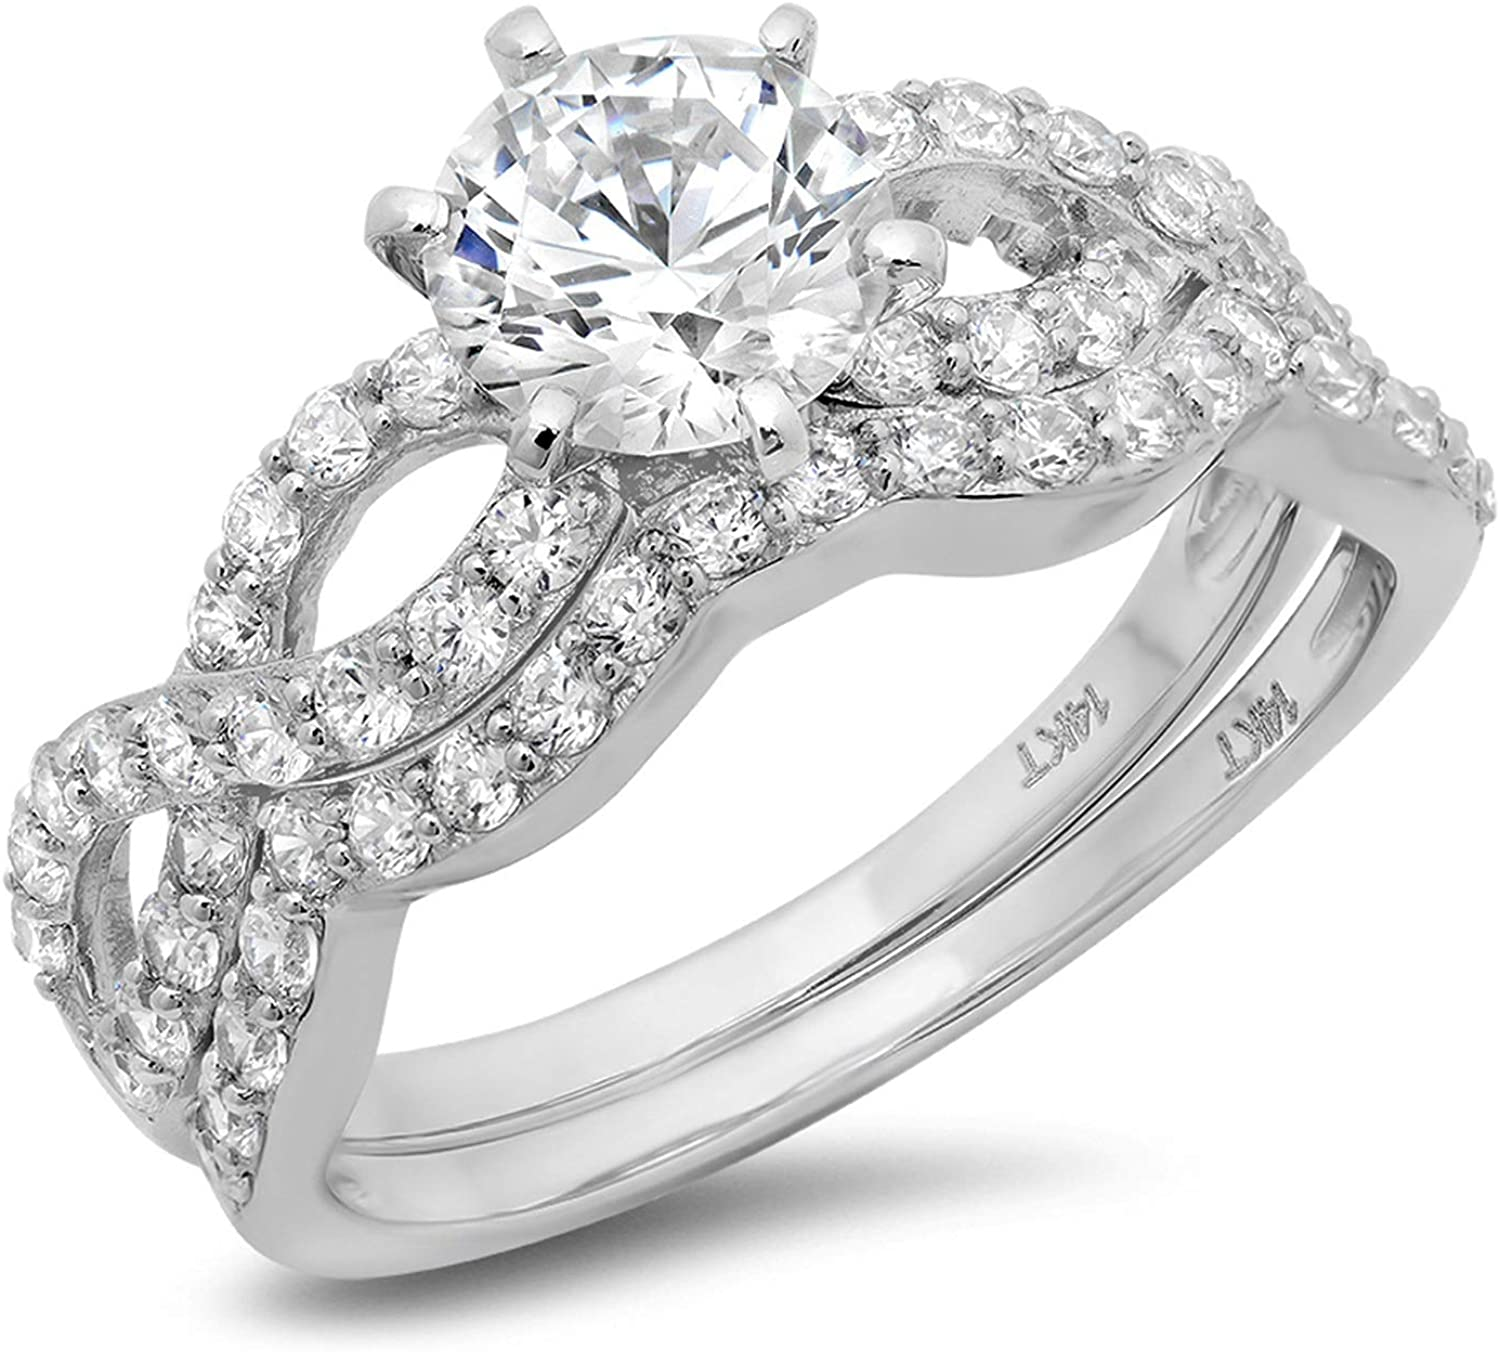 1.49ct Round Cut Halo Pave Solitaire Split Shank Accent VVS1 Ideal D Moissanite & Simulated Diamond Engagement Promise Designer Anniversary Wedding Bridal ring band set Curved 14k White Gold